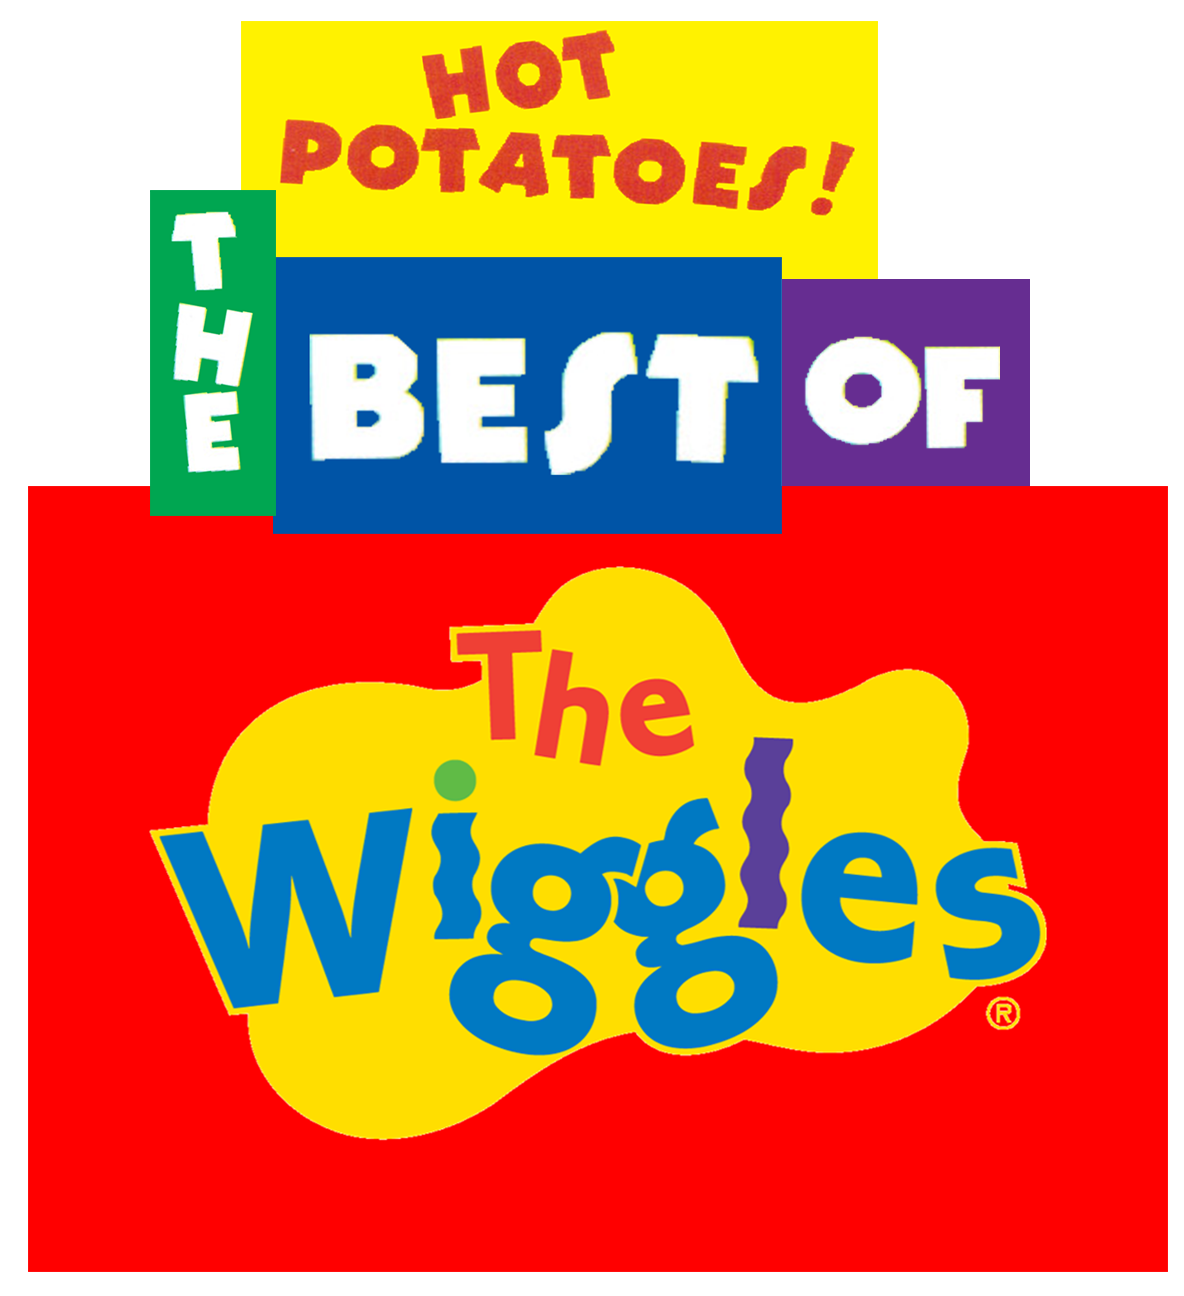 Hot Potatoes! The Best of The Wiggles (2009 album)